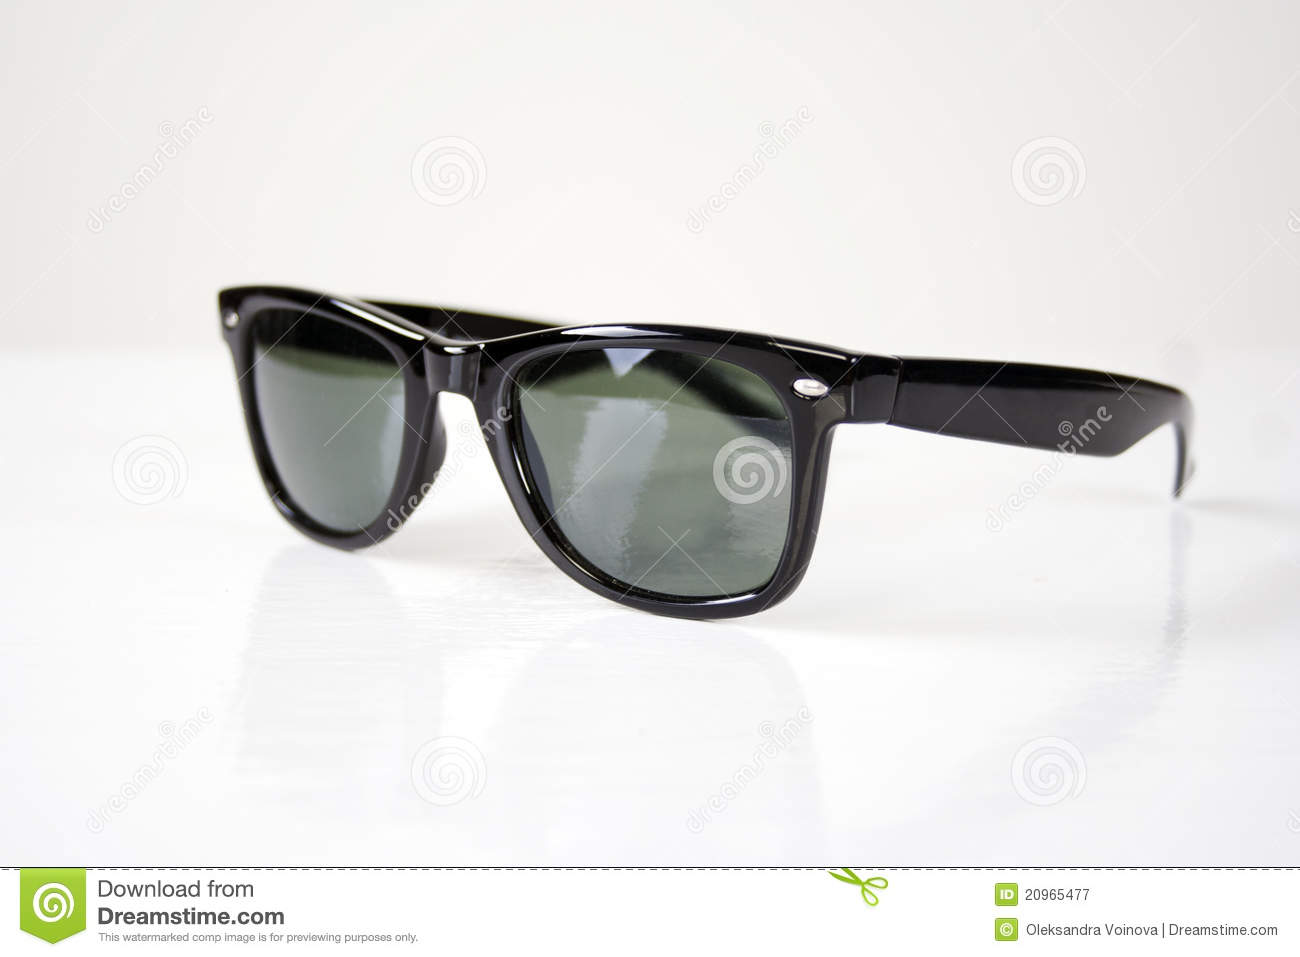 Black shades made by ak47 with 500 zombies